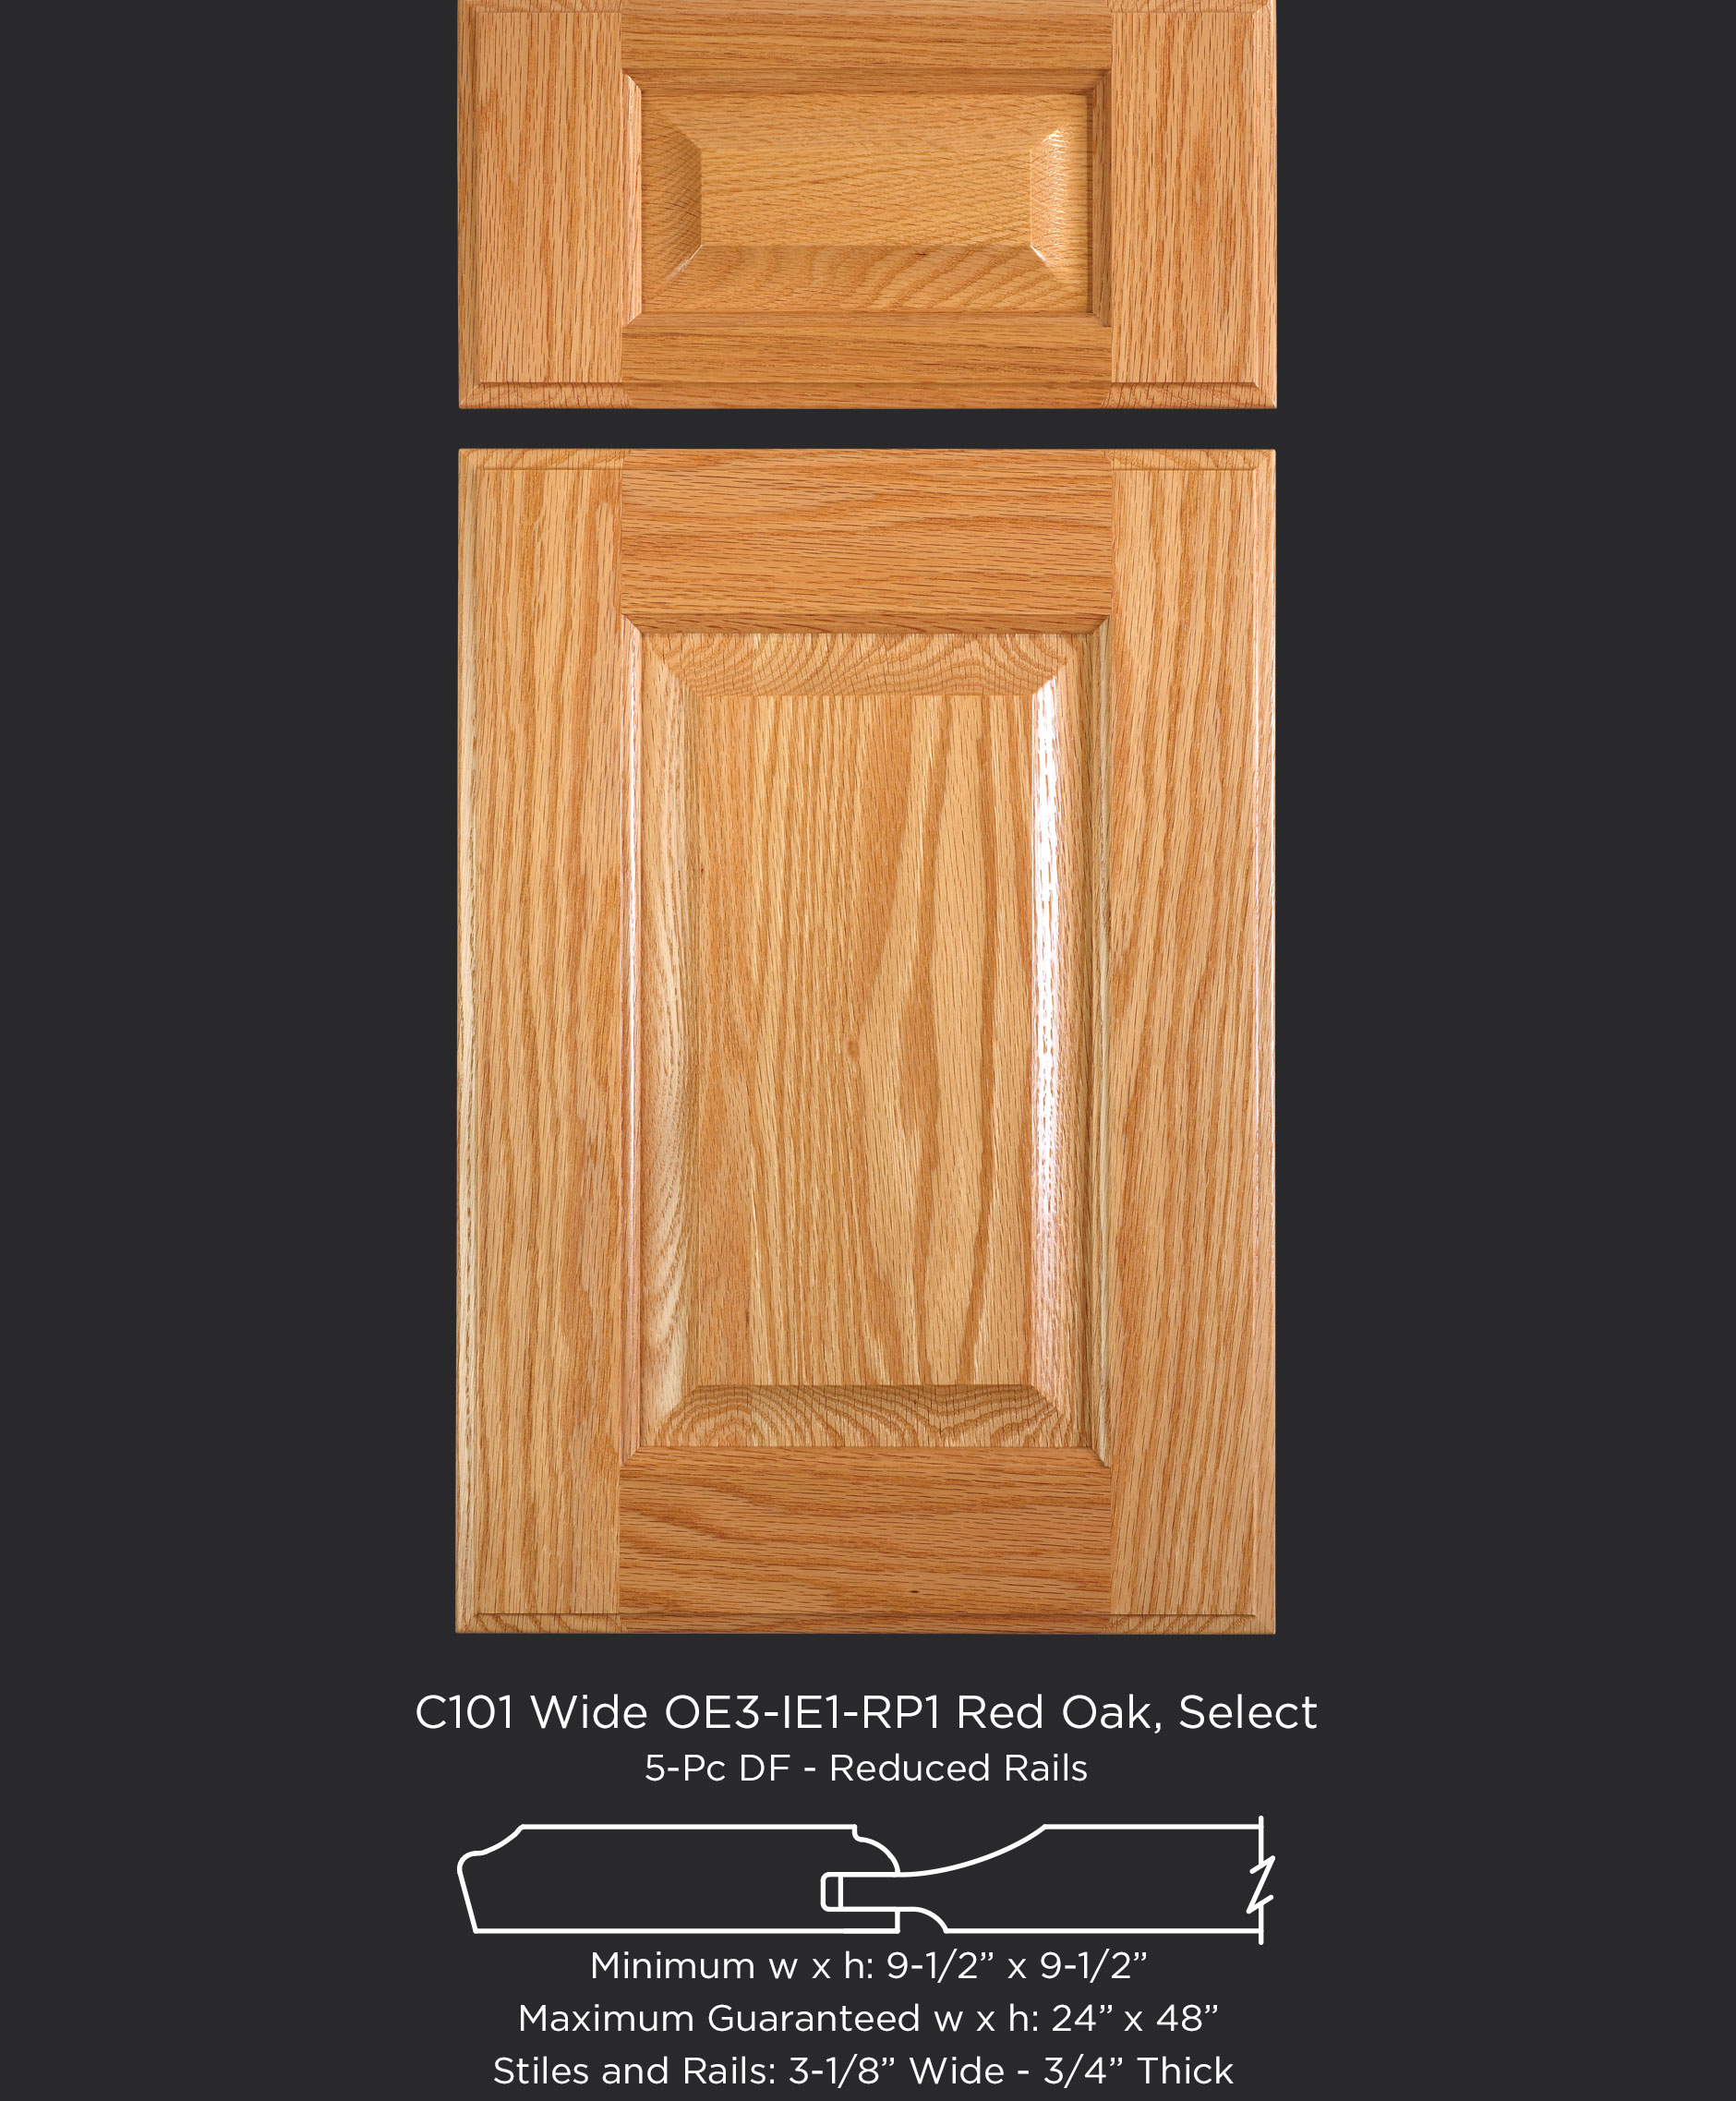 C101 Cope and Stick Cabinet Door OE3-IE1-RP1 Red Oak, Select with 5-piece reduced drawer front